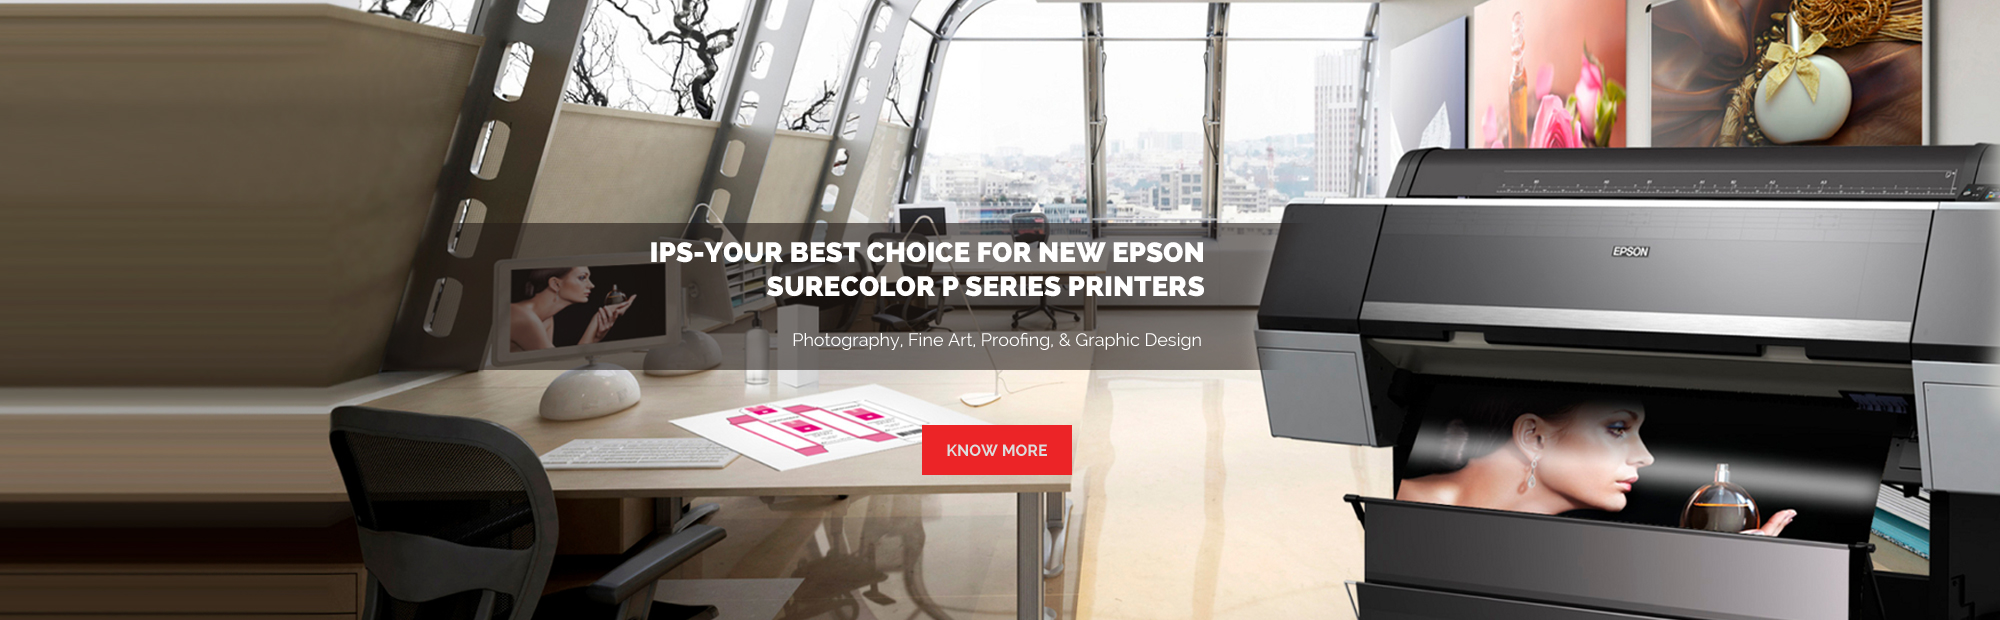 It s easy to find the office supplies copy paper furniture ink - Epson Printer Epson Supplies Plotters Printers Inks Paper The Ips Store